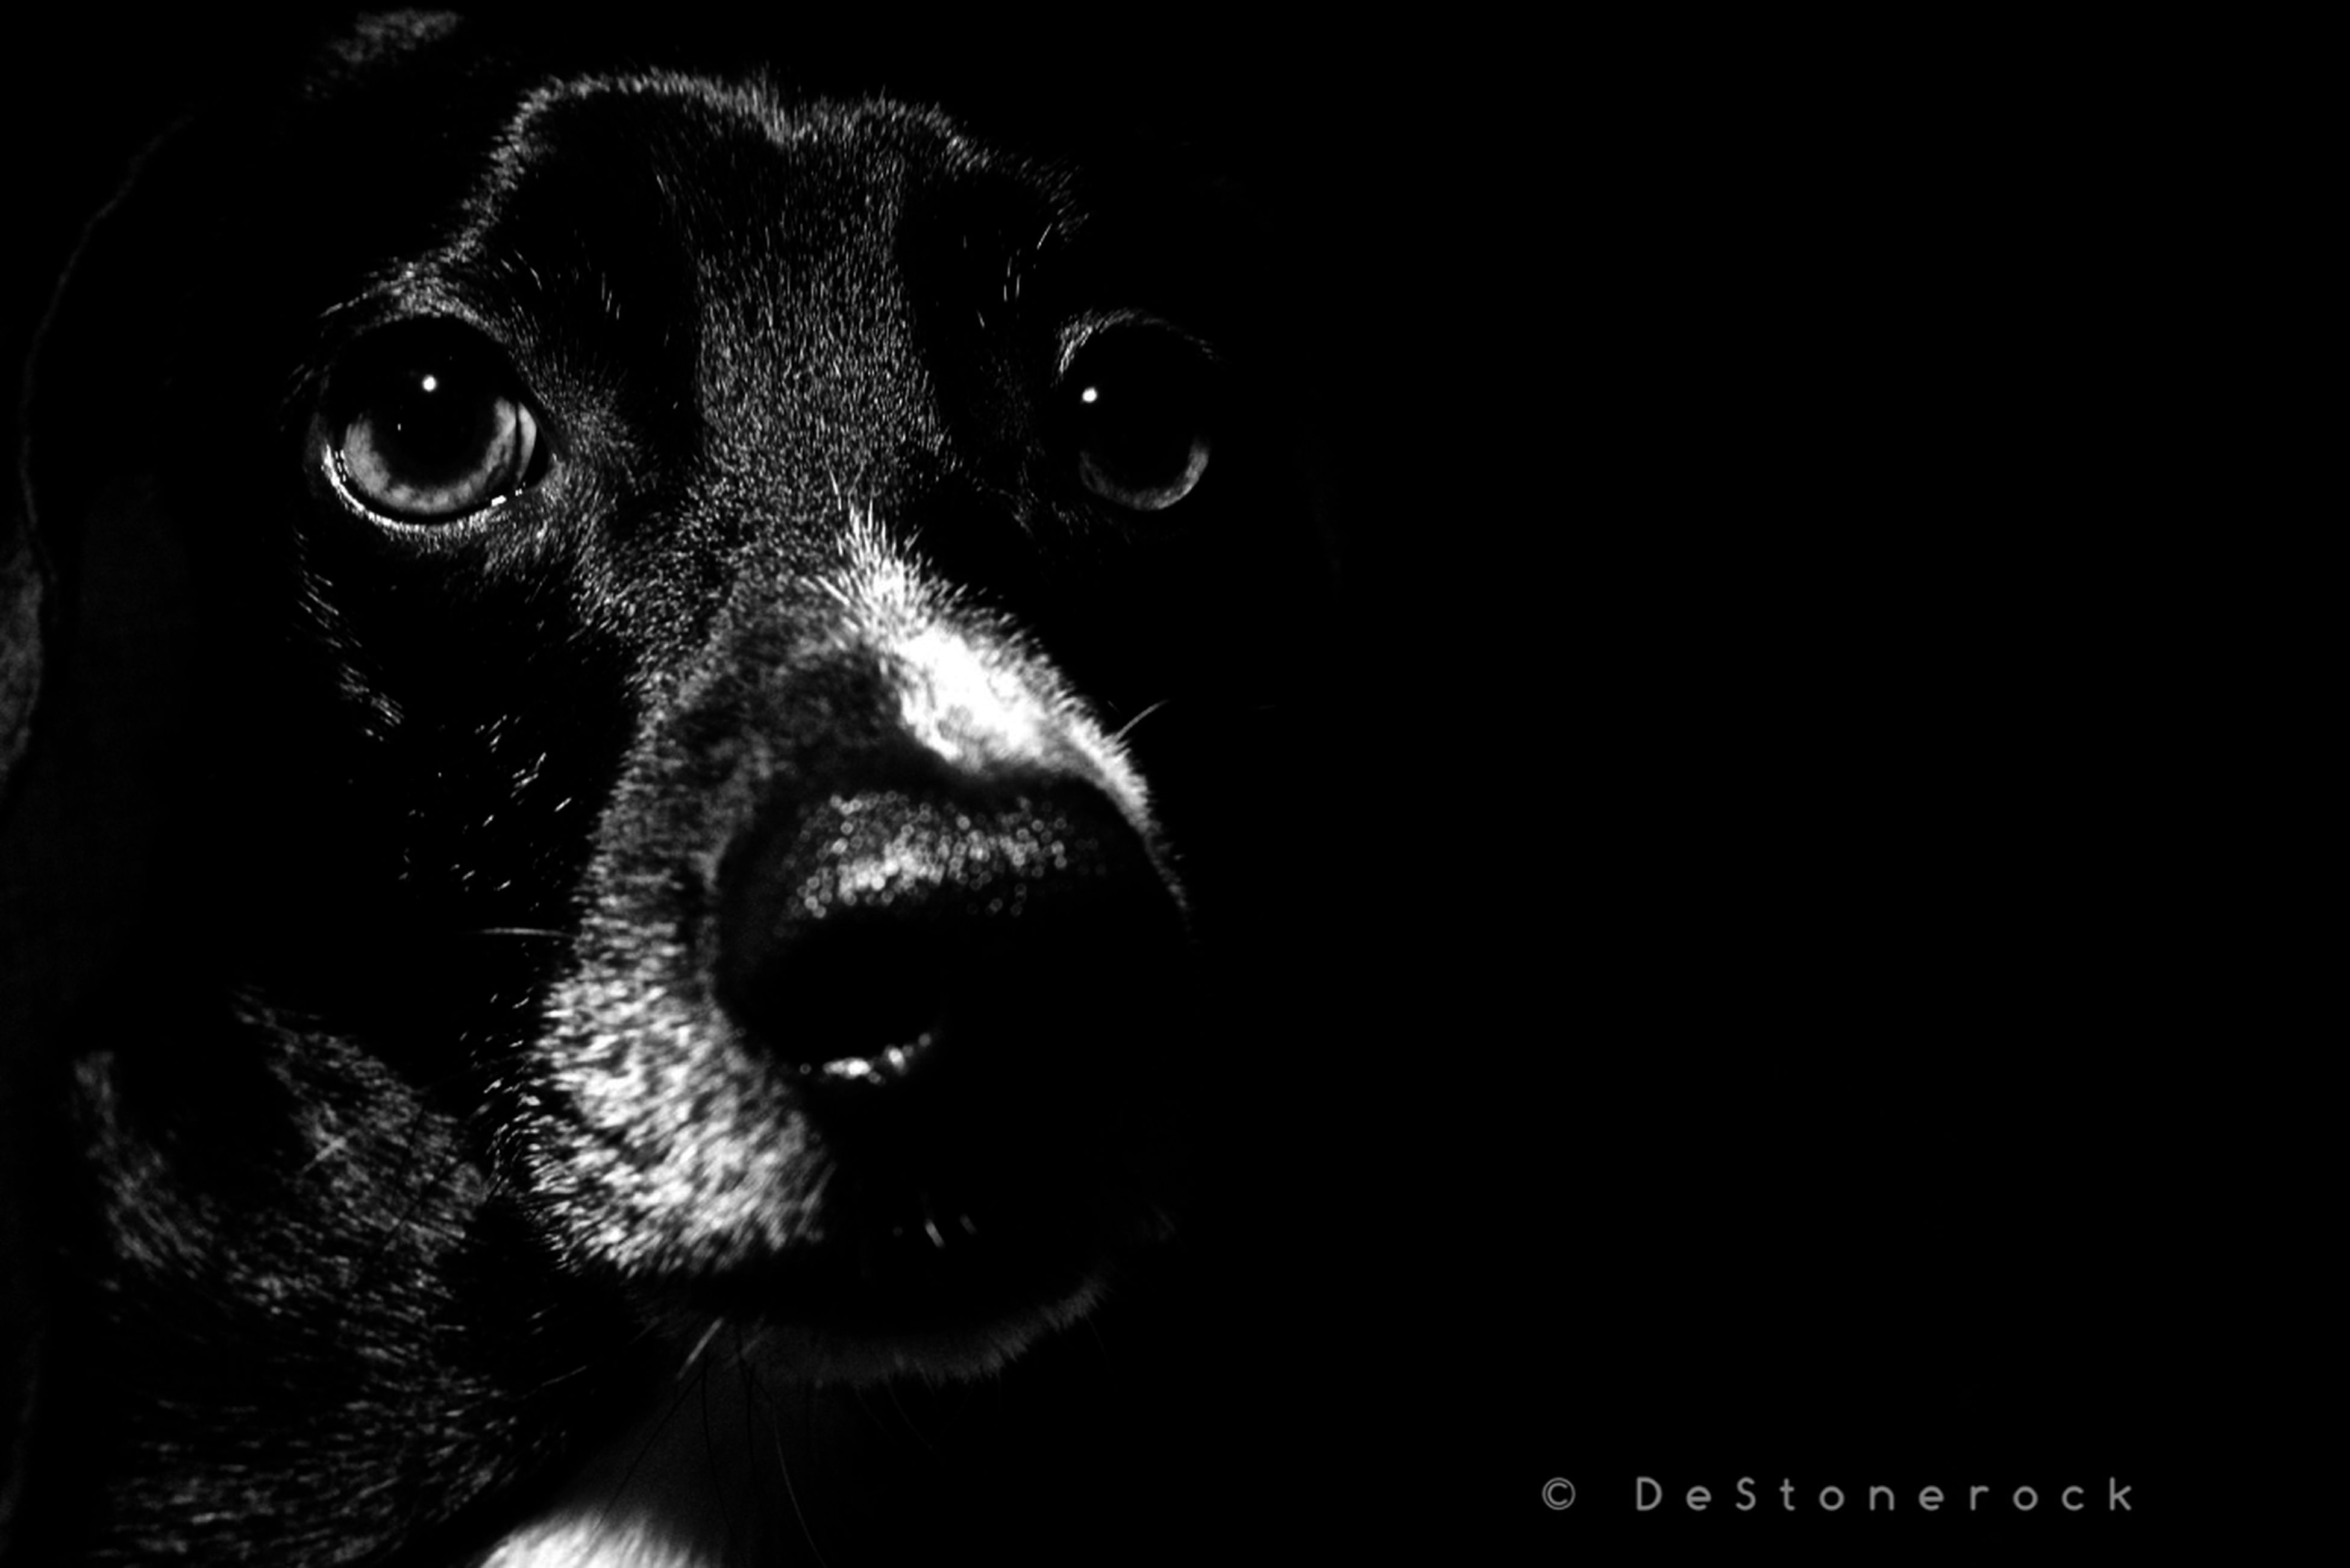 pets, one animal, animal themes, domestic animals, mammal, dog, animal head, close-up, portrait, indoors, looking at camera, animal body part, animal eye, black color, snout, no people, alertness, front view, staring